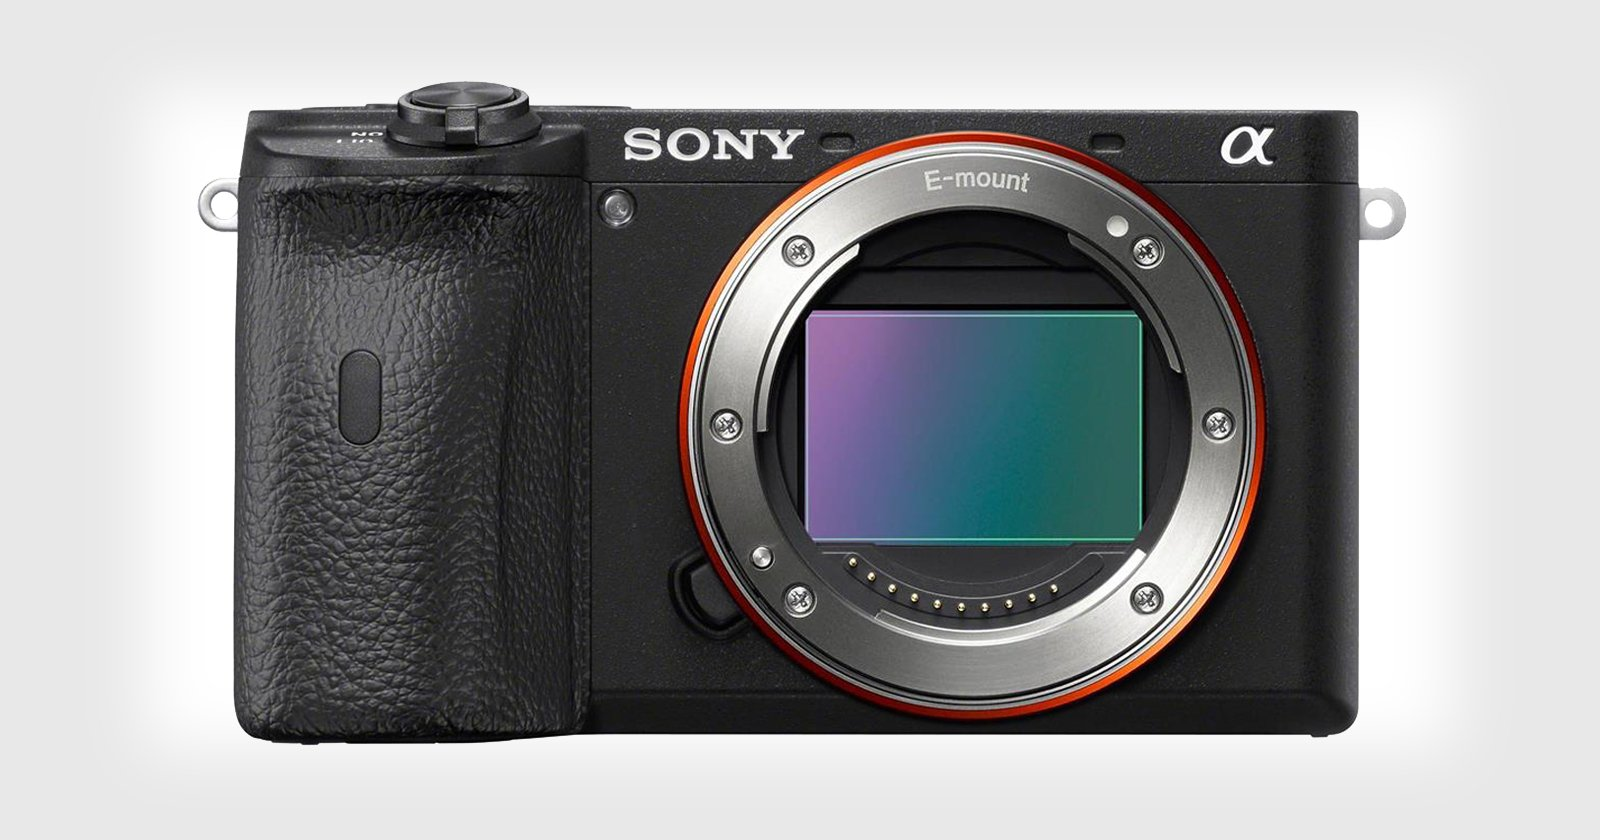 Sony to Debut a New Line of 'Compact' Full-Frame Cameras Starting this Month: Report